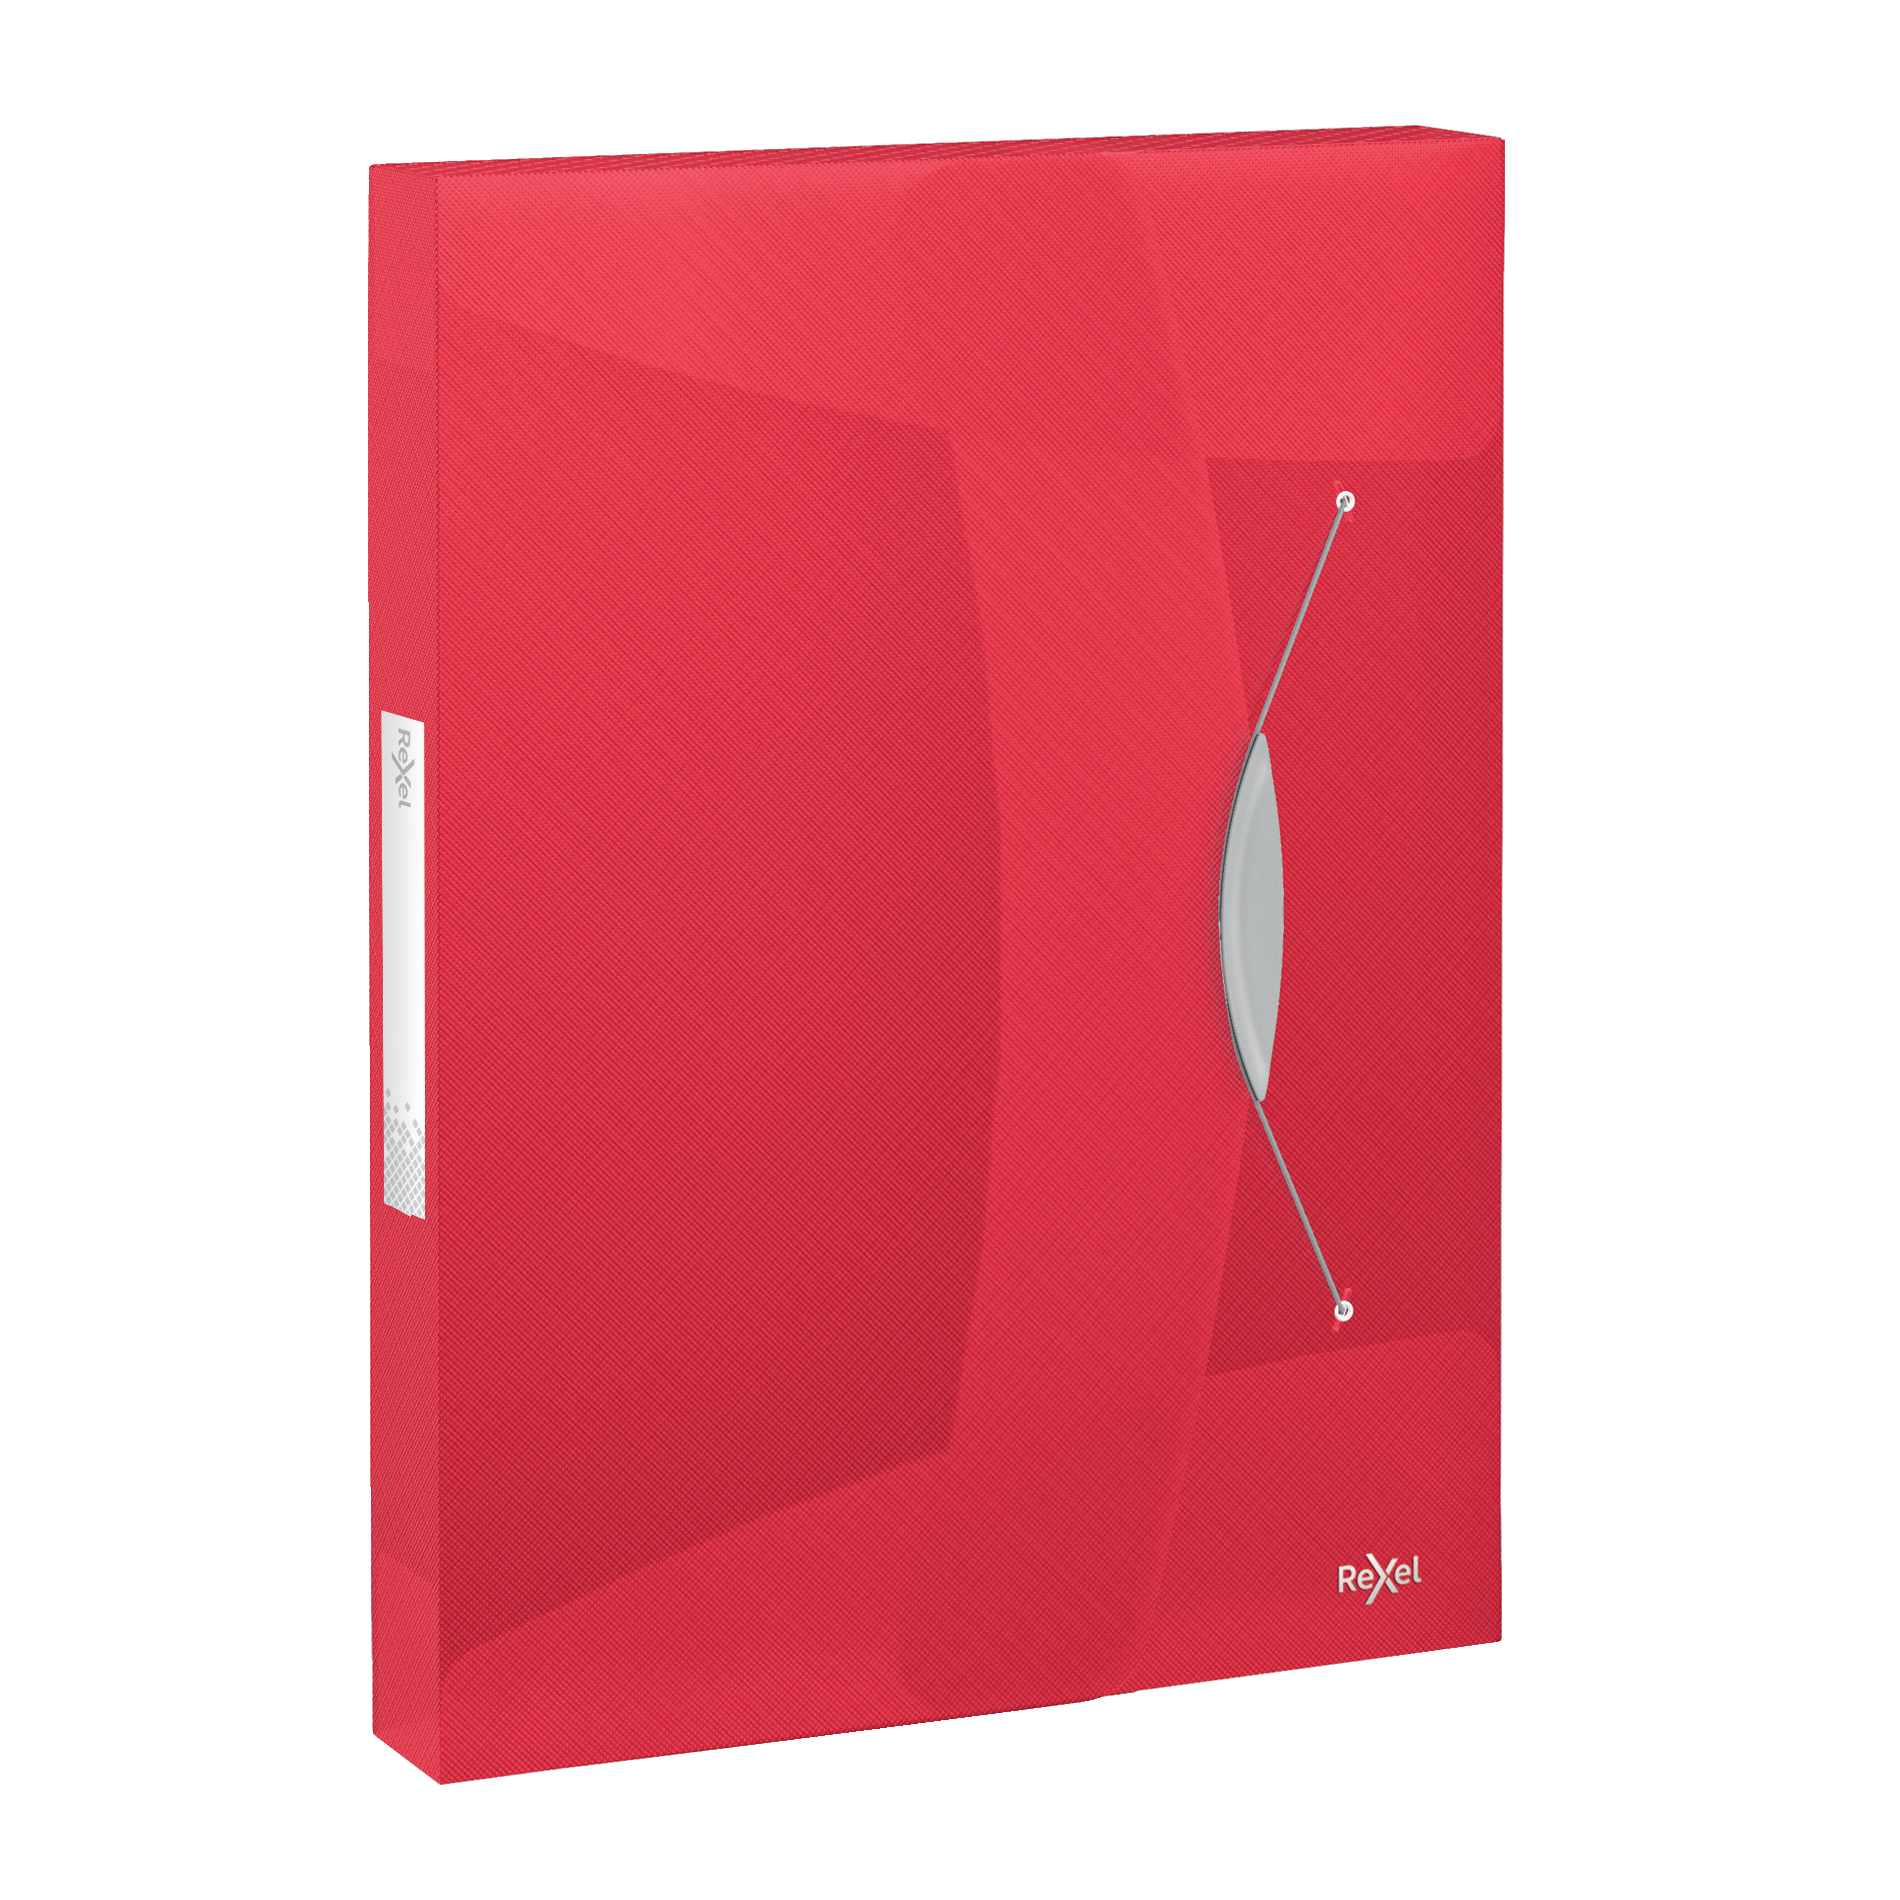 Box Files Rexel Choices Box File PP Elastic Strap 40mm Spine A4 Trans Red Ref 2115668